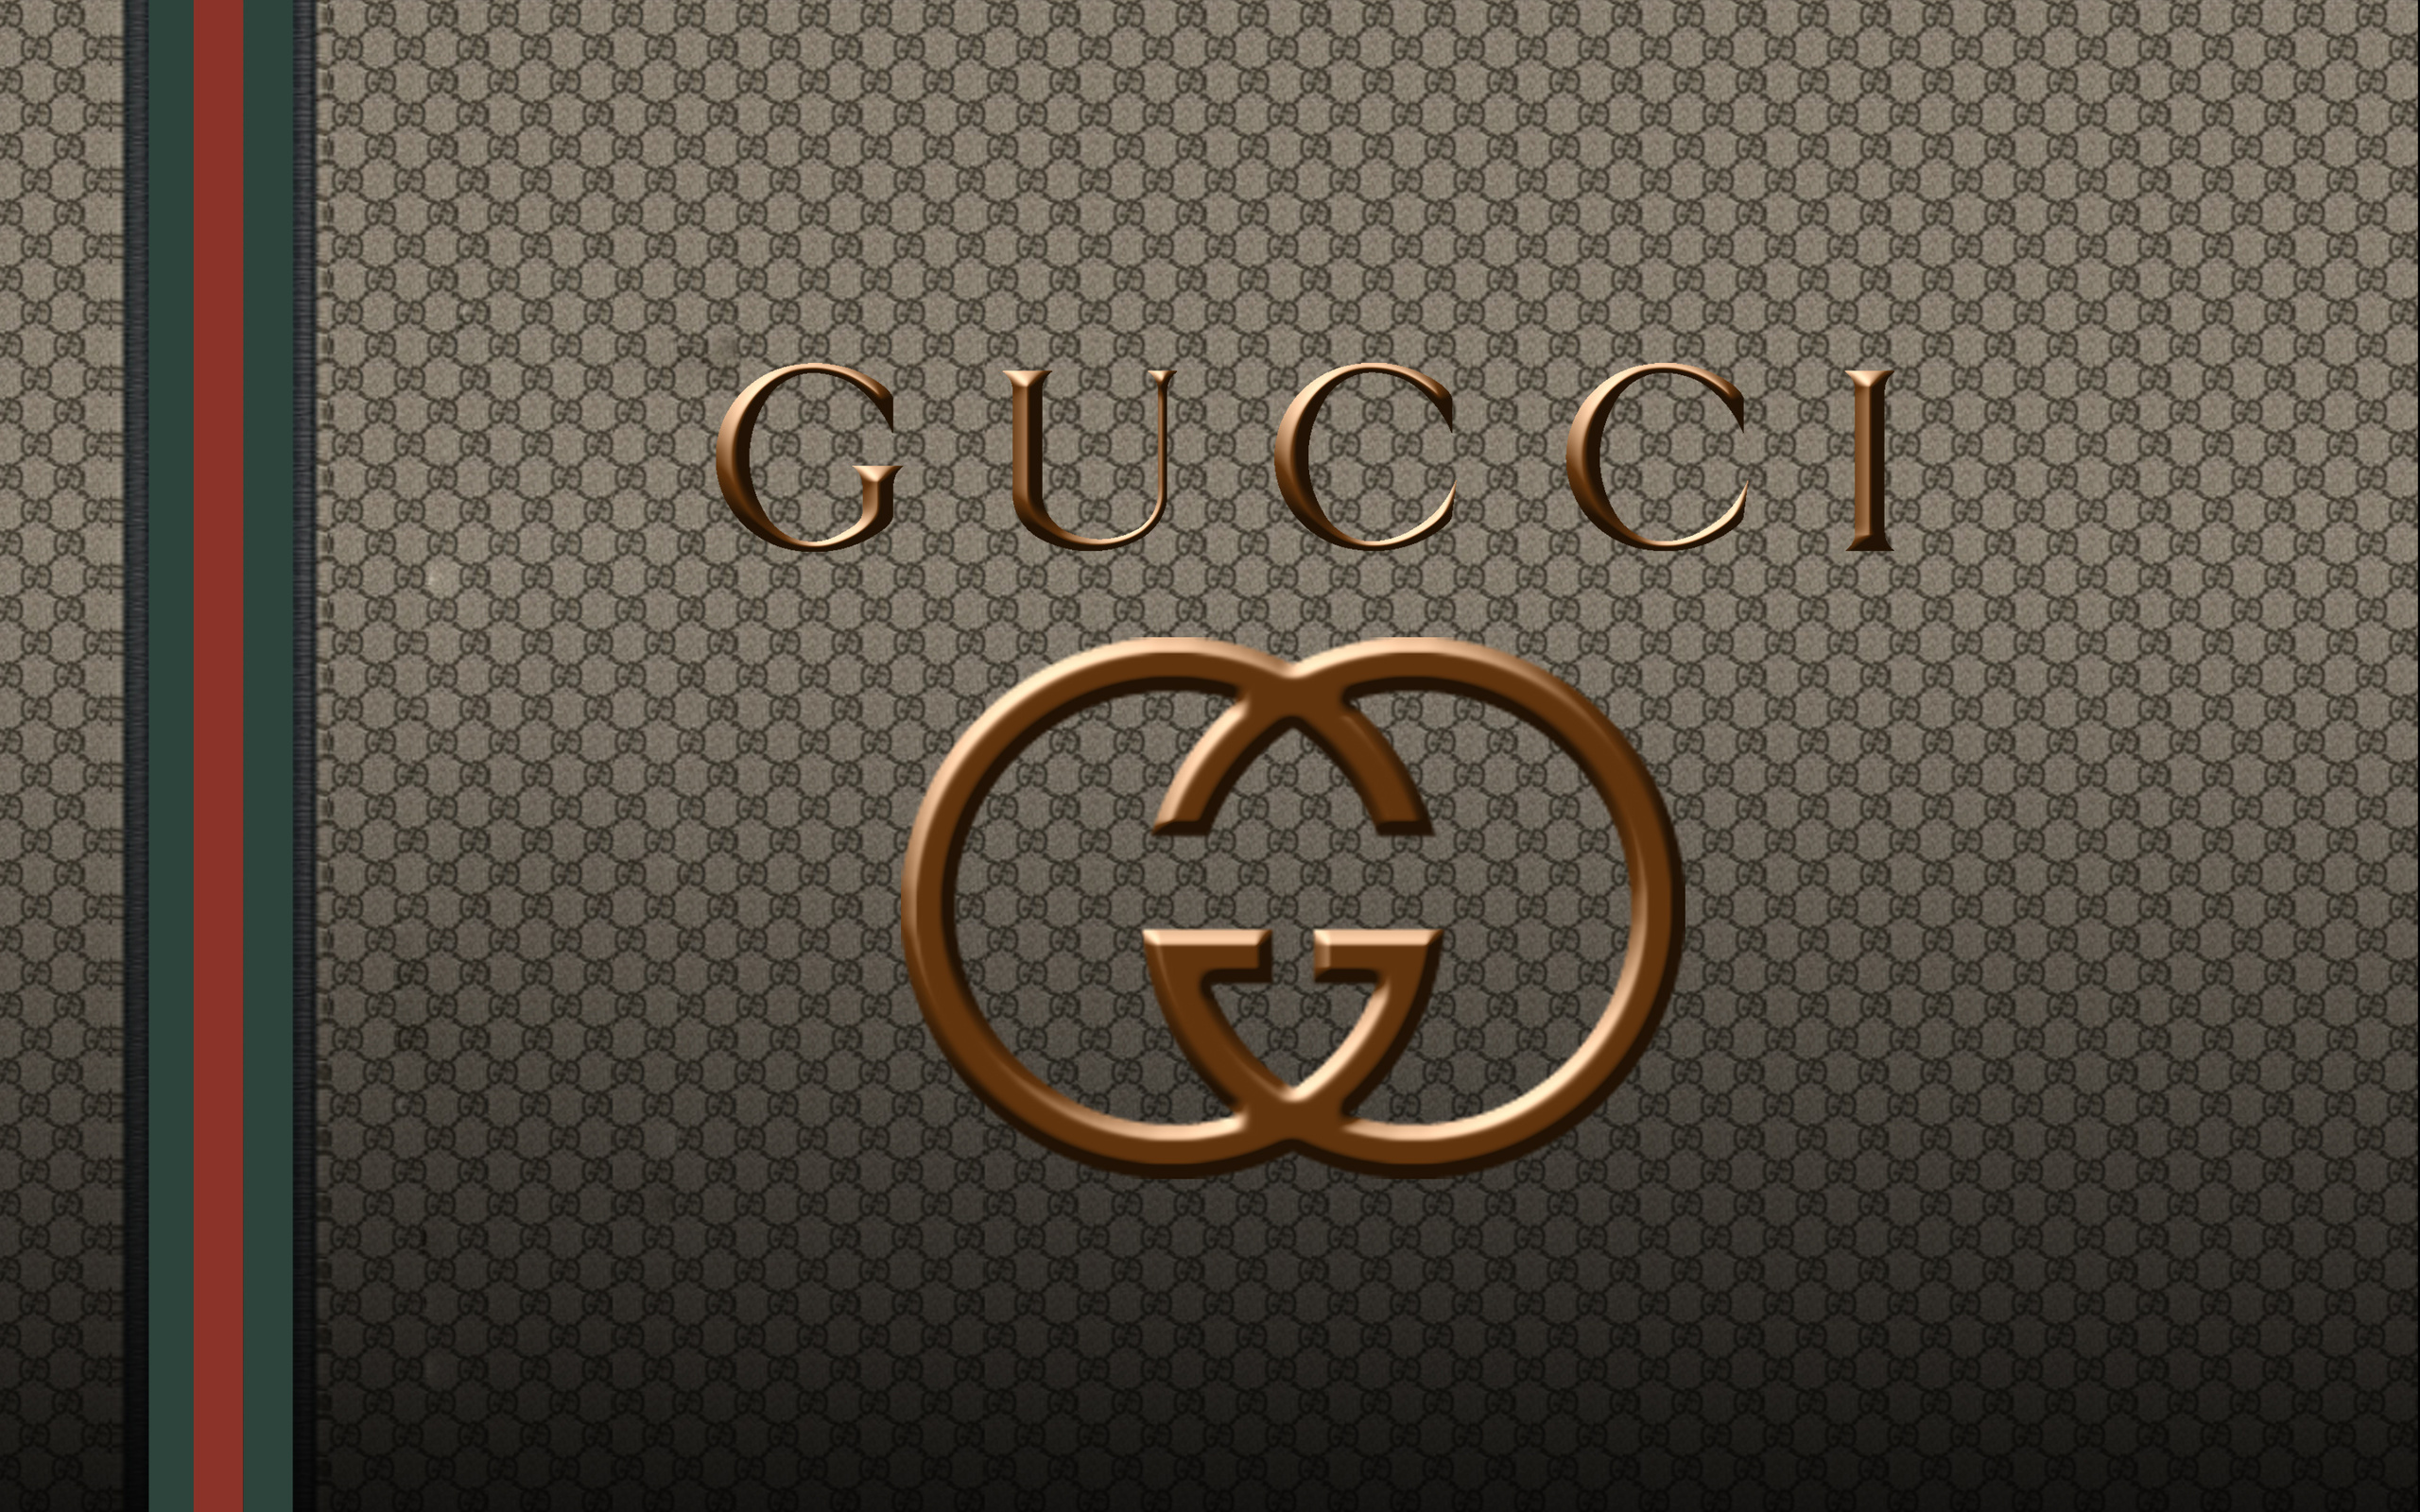 3d Game Wallpaper For Mobile Gucci Logo Wallpapers Hd Pixelstalk Net